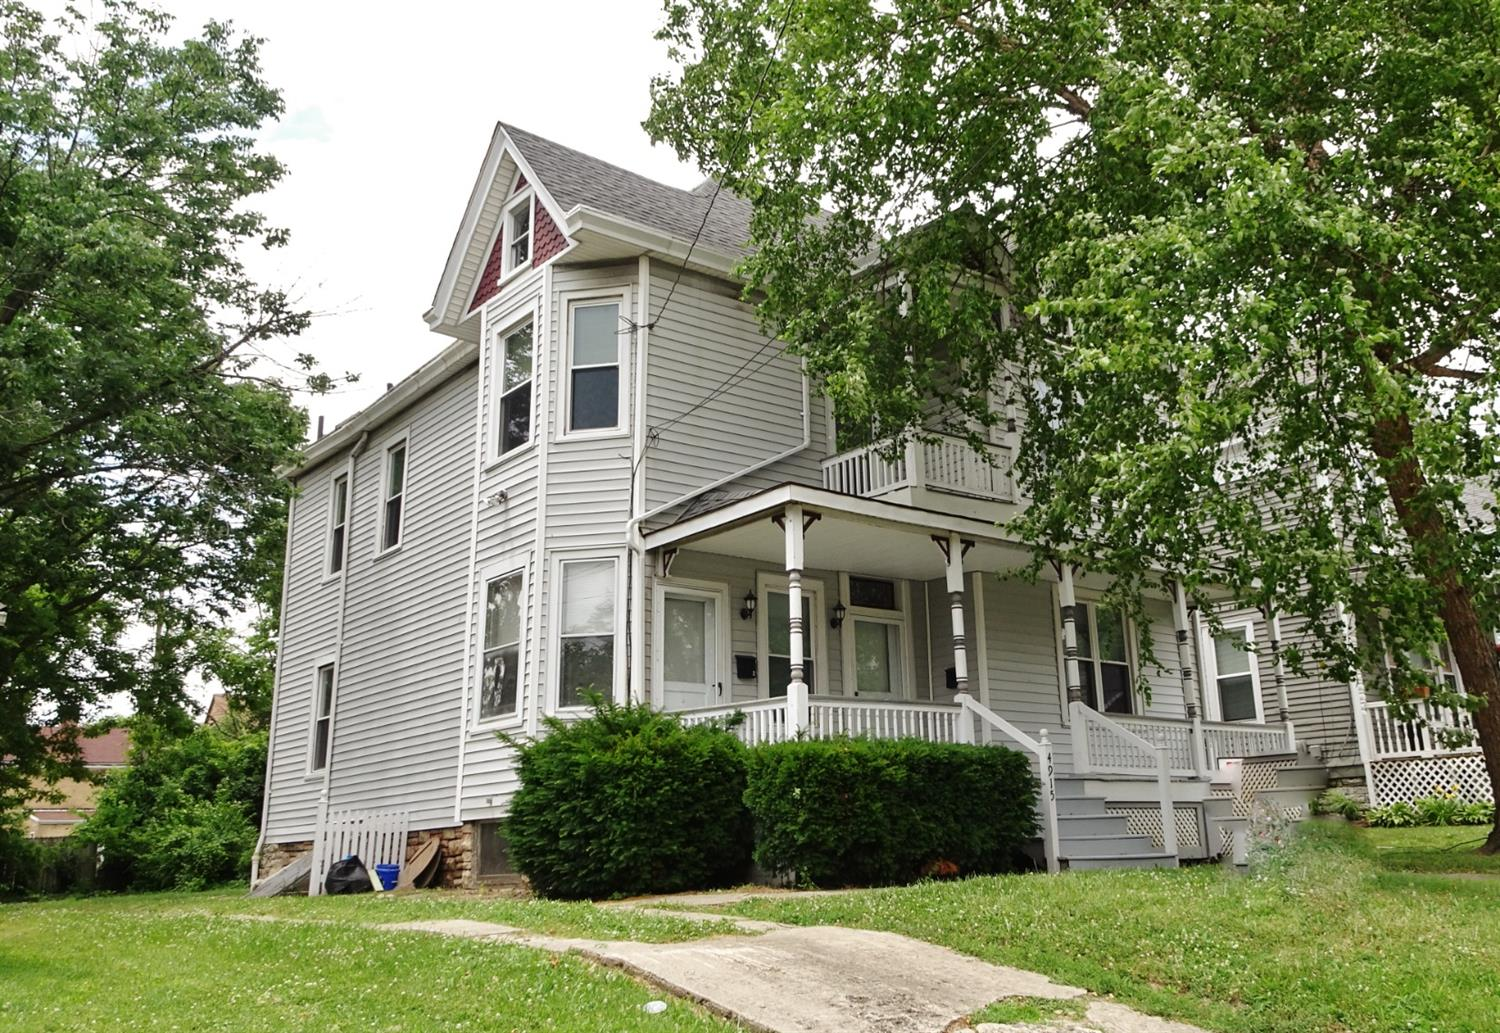 Property for sale at 4915 Marion, Norwood,  Ohio 45212